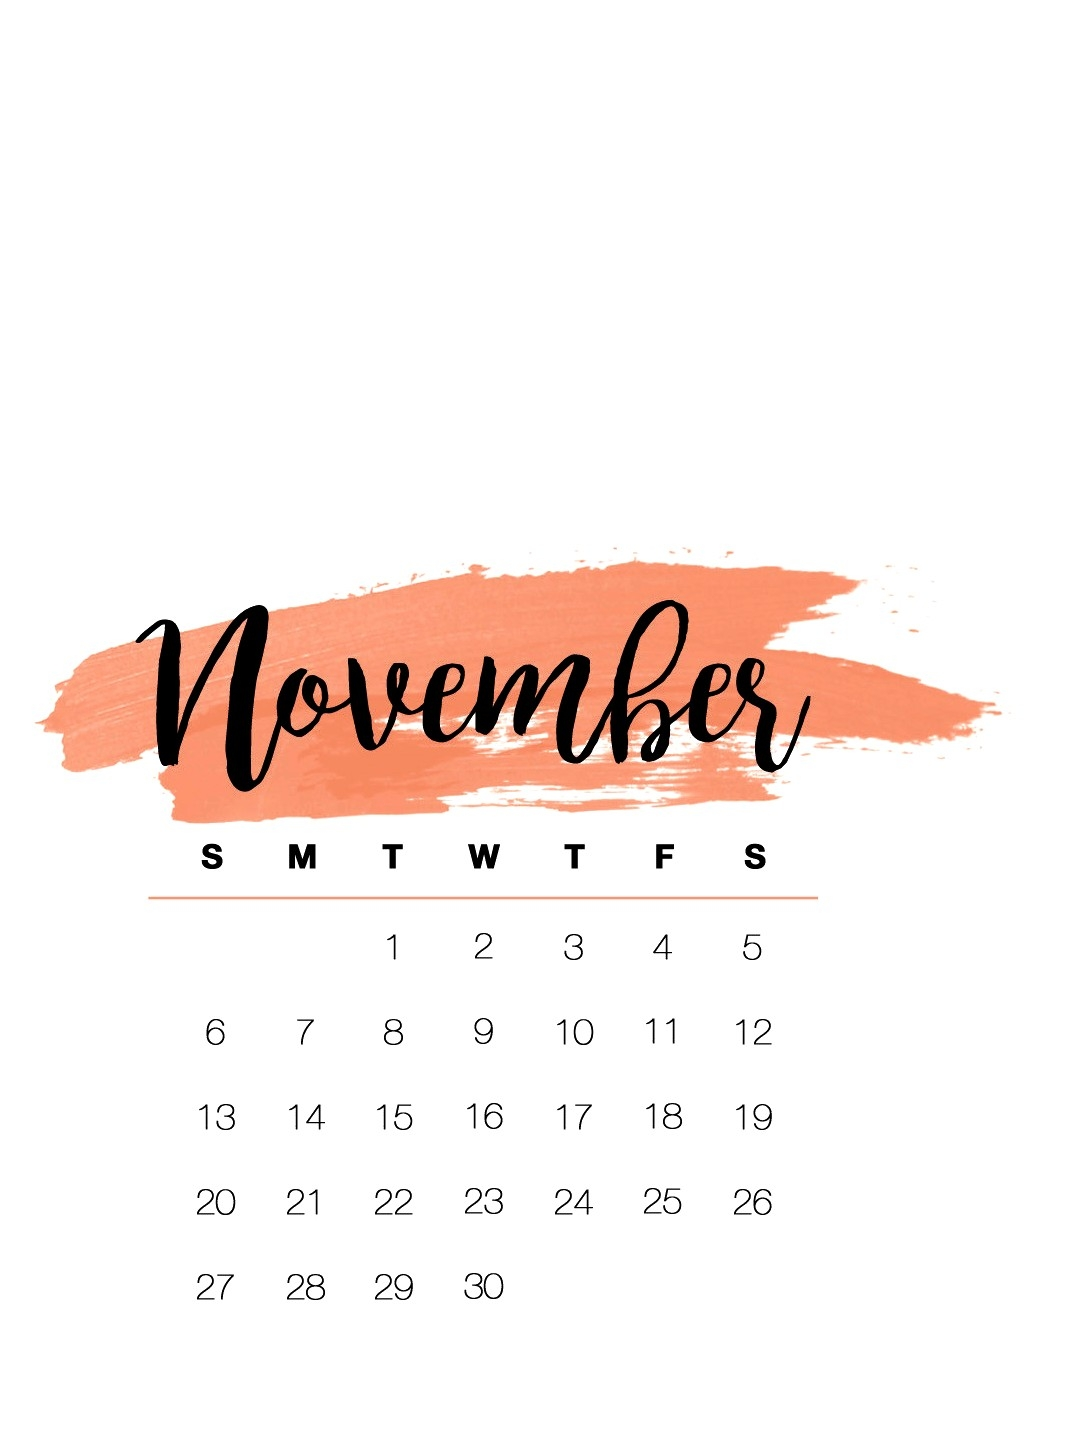 cute november 2018 calendar wallpaper printable calendar 2018 Editable November 2018 Calendar erdferdf